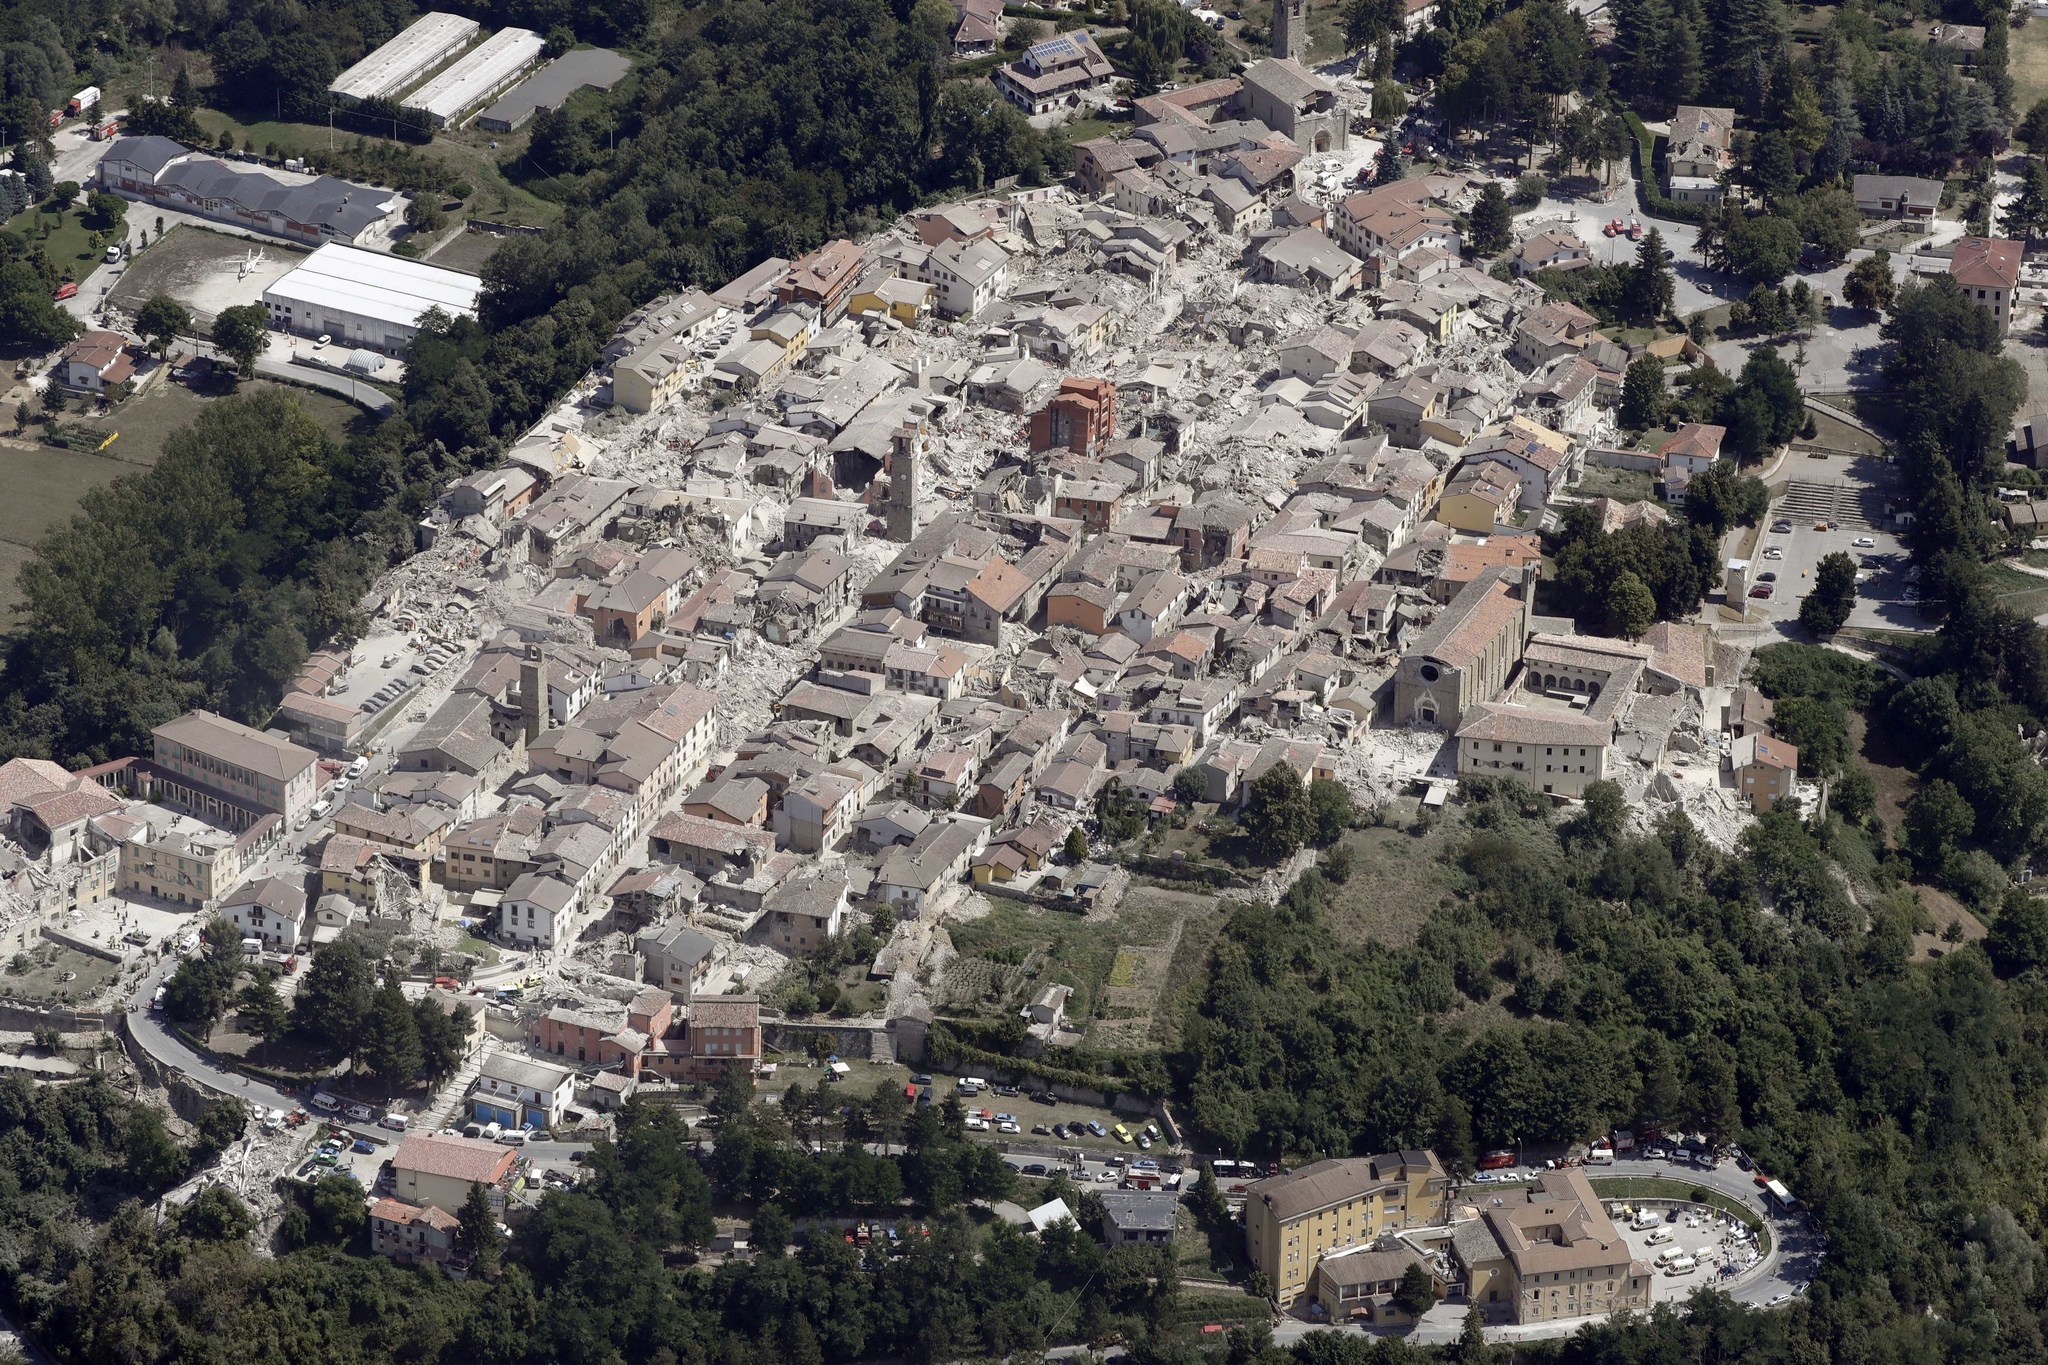 Amatrice Photo italian town known for its pasta dish 'is no more' after earthquake